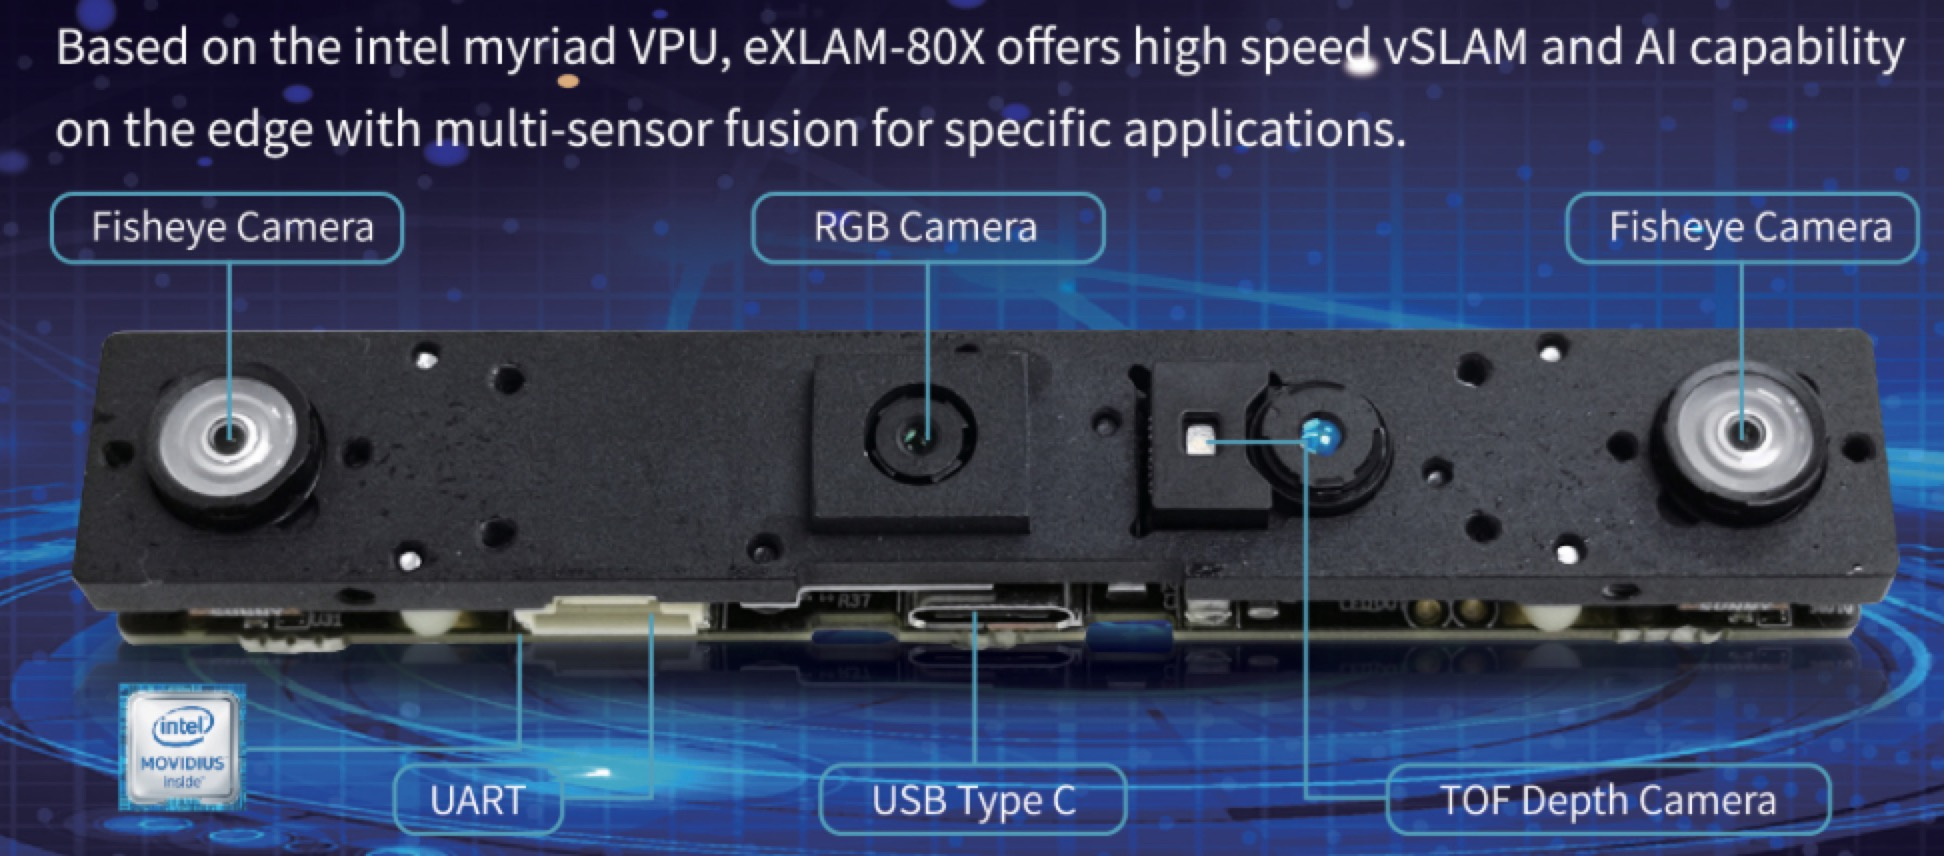 Xvisio Technology: Readies the Industry Leading High-speed VSLAM